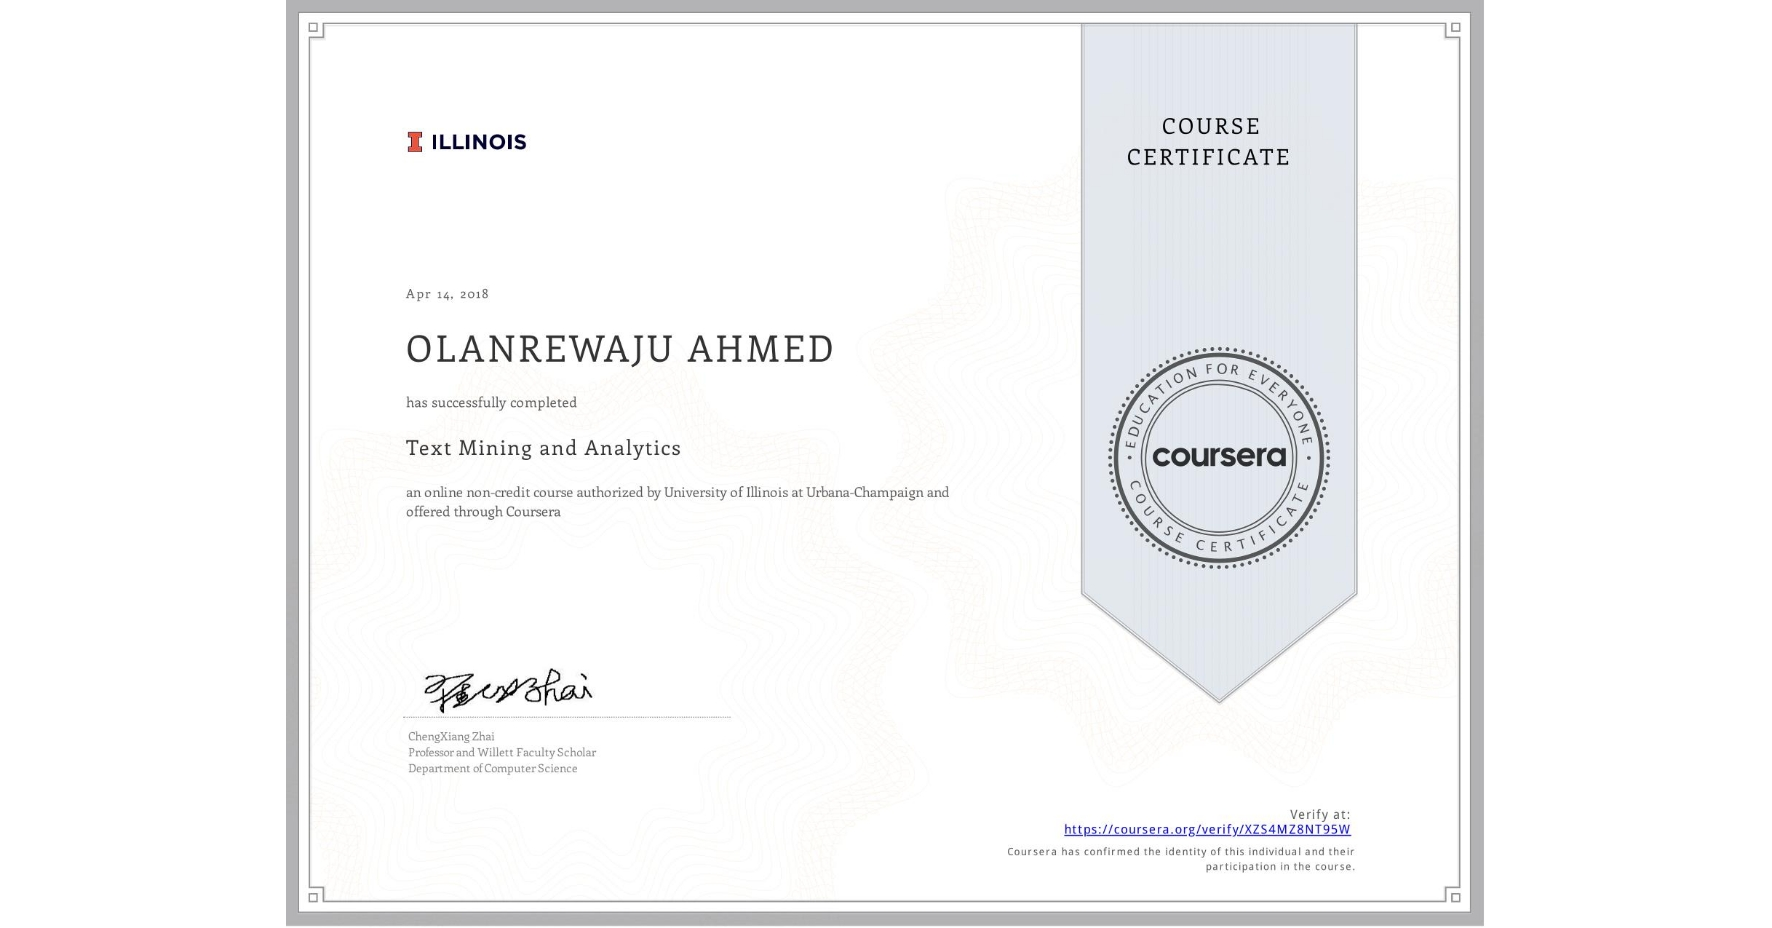 View certificate for OLANREWAJU AHMED, Text Mining and Analytics, an online non-credit course authorized by University of Illinois at Urbana-Champaign and offered through Coursera